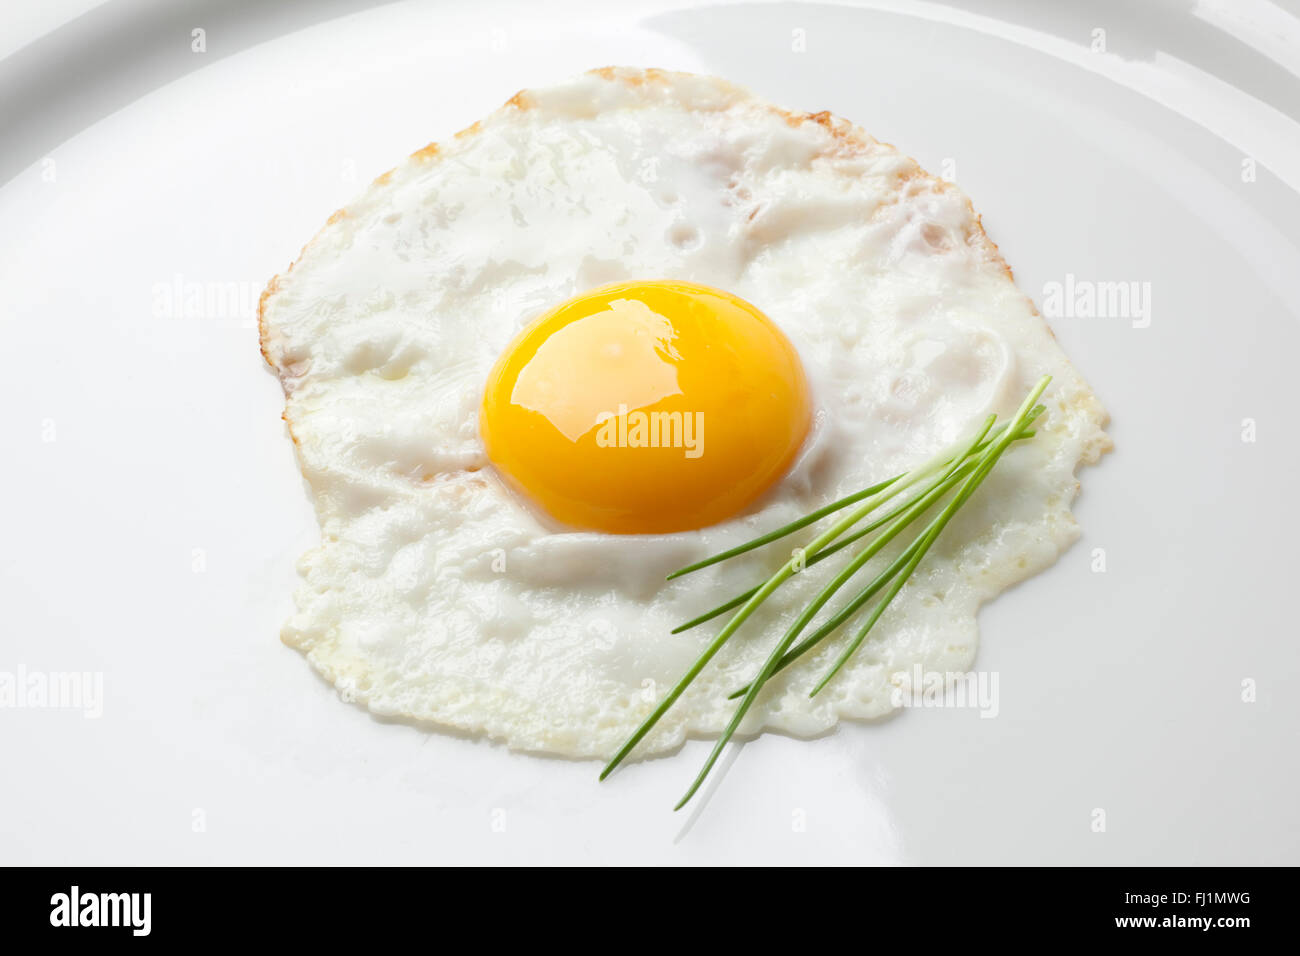 Fried egg sunny side up with chive on a white plate - Stock Image